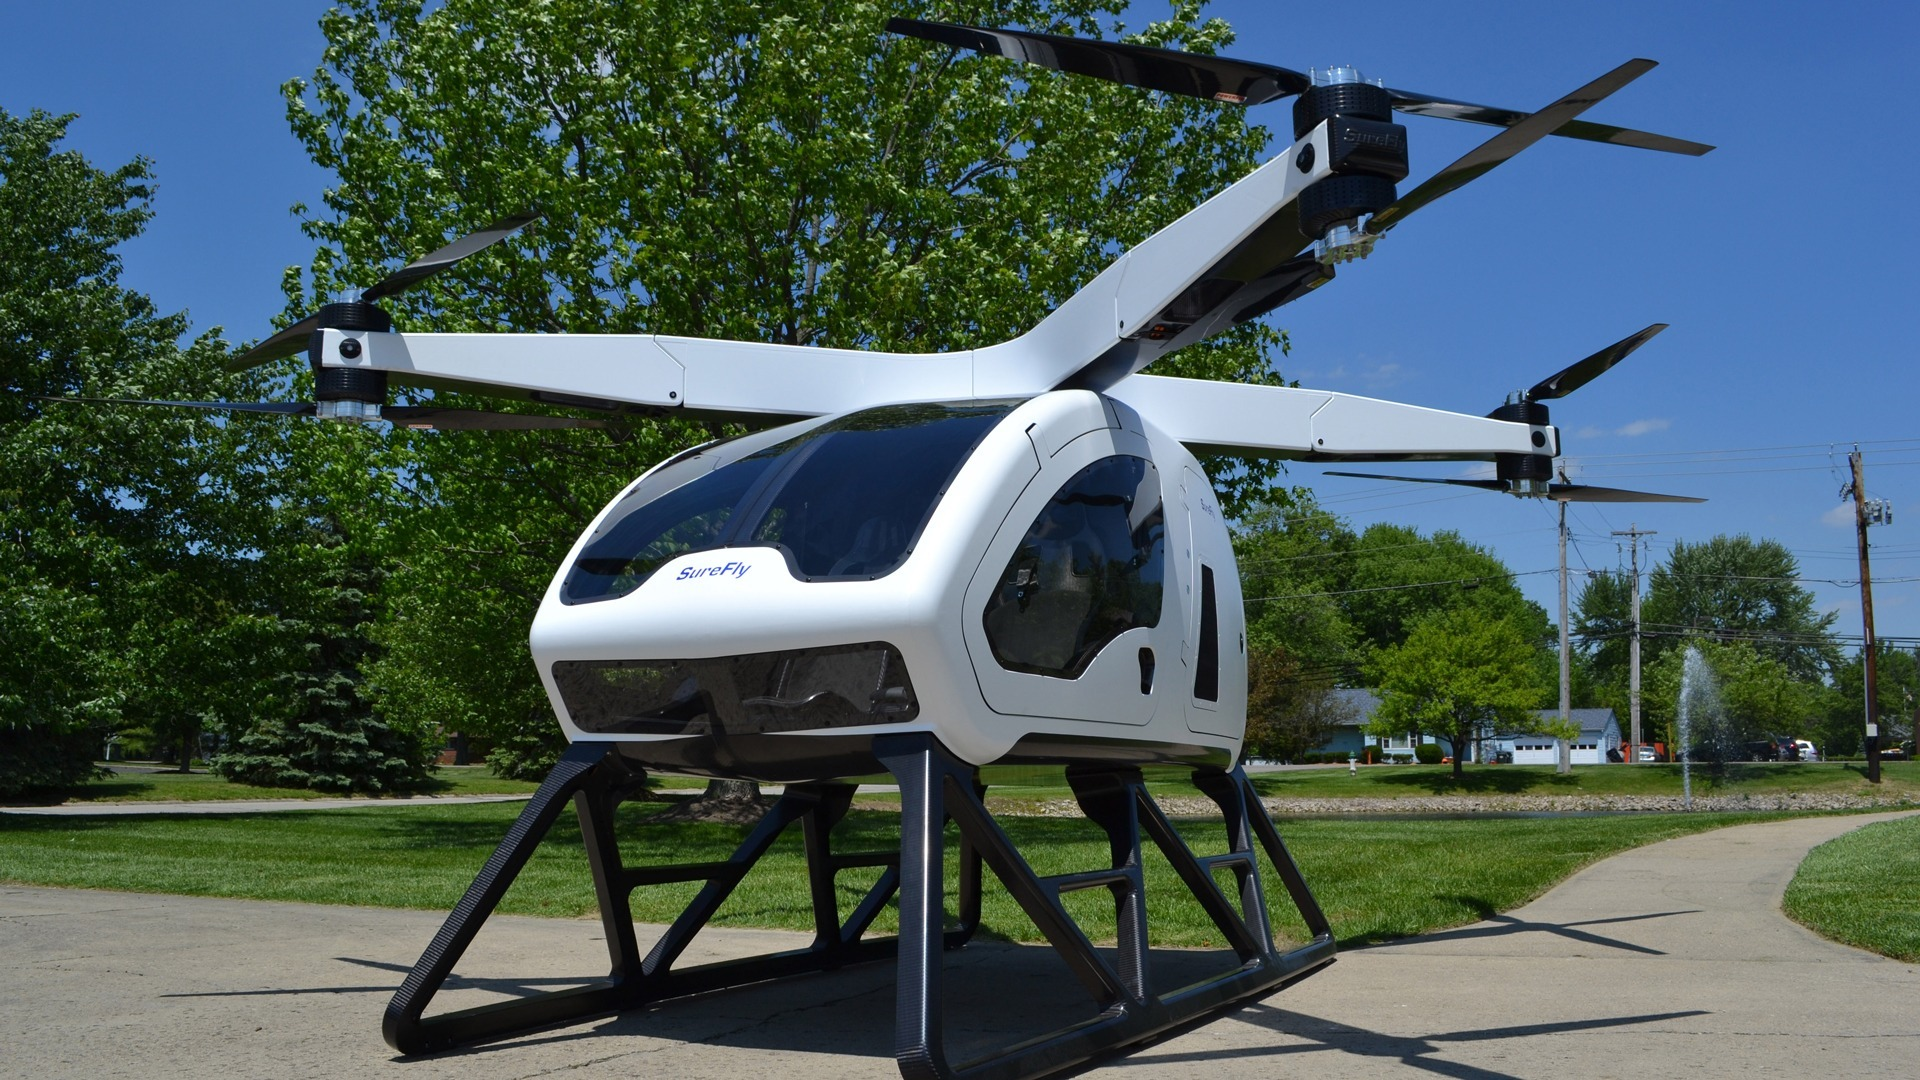 best drone helicopter with Solidsmack Weekend Reader Week 26 17 on 87156 moreover Solidsmack Weekend Reader Week 26 17 additionally Watch furthermore Ces 2016 Ehang 184 Flying Machine Drone 8354 as well Flysky Fs Ct6b 2 4ghz 6 Channel Transmitter And Receiver Radio System.